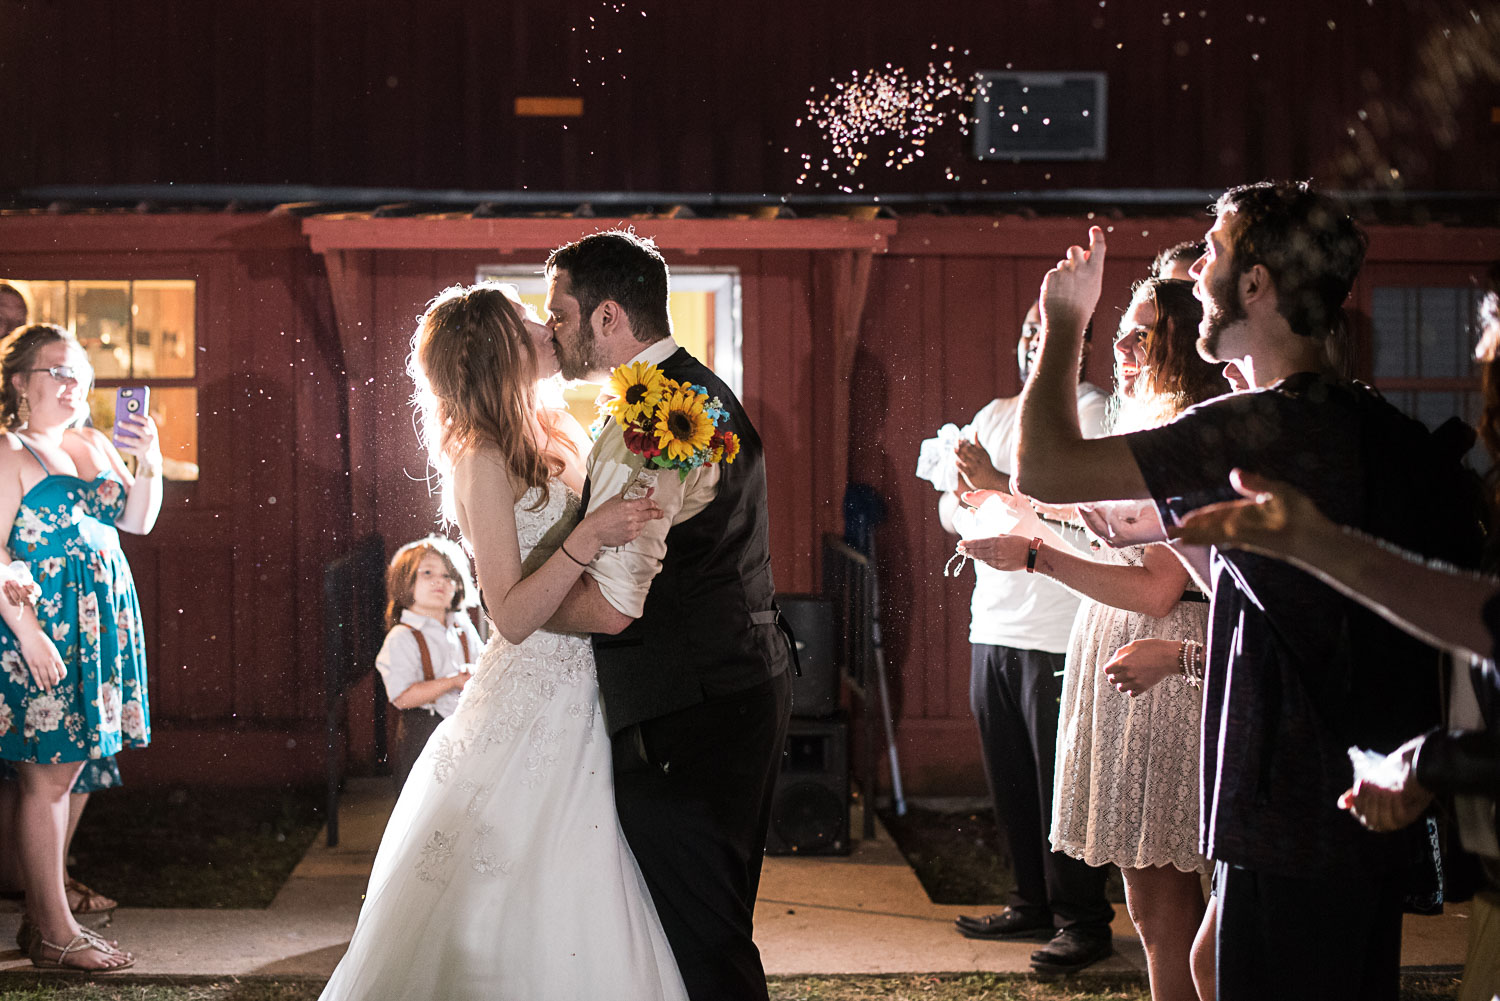 198 bride and groom exit with birdseed at night.jpg